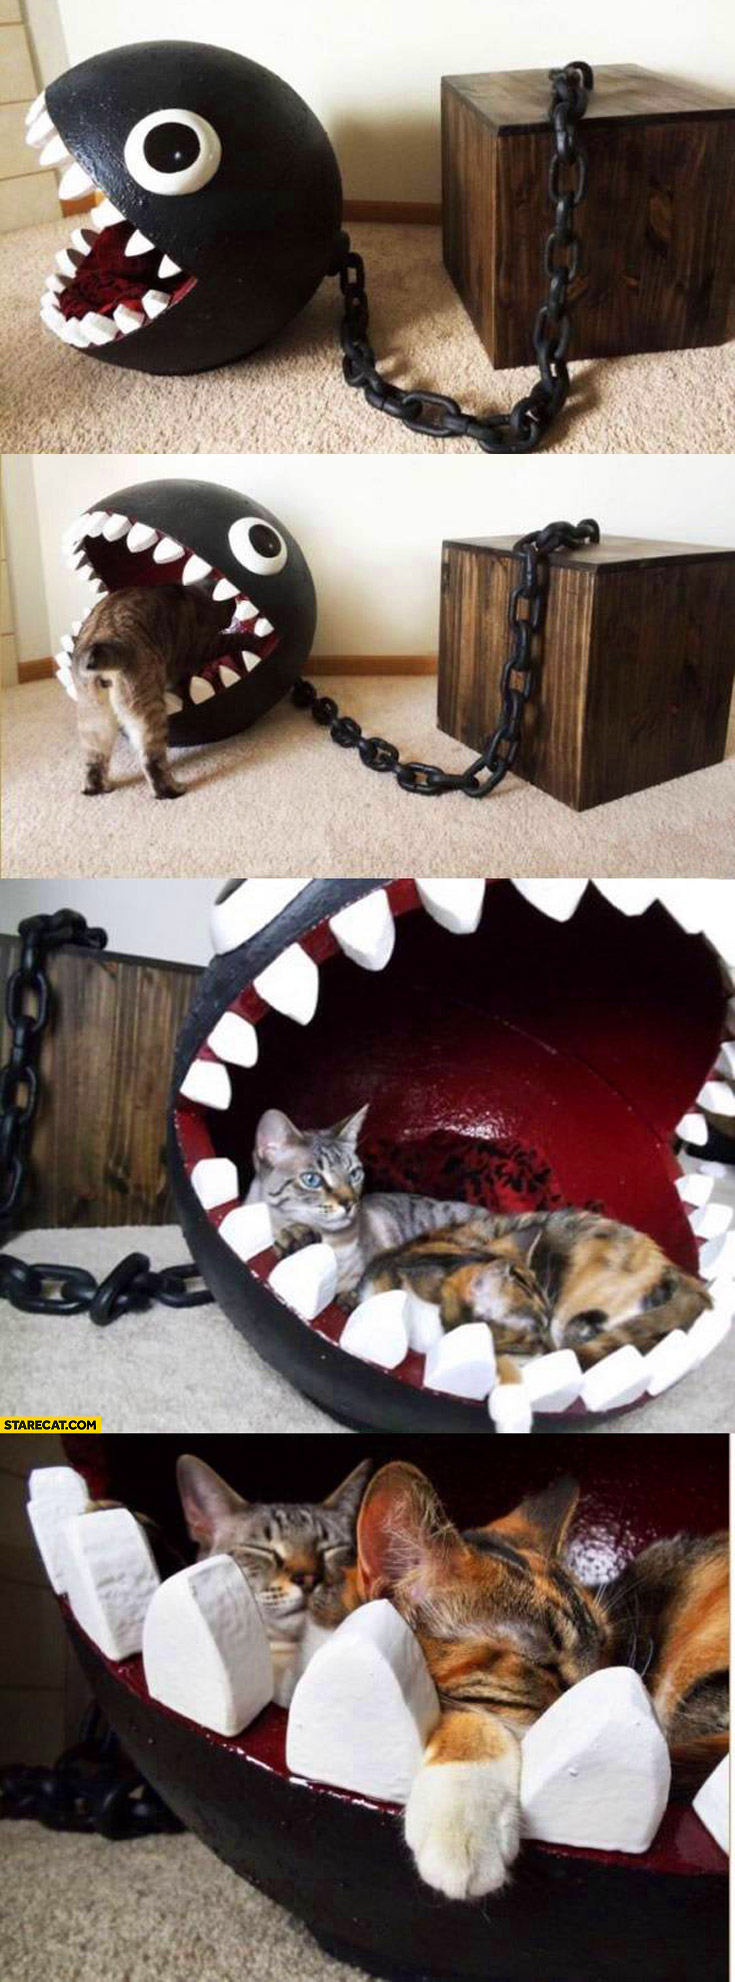 Chain Chomp kitty bed creative for cats